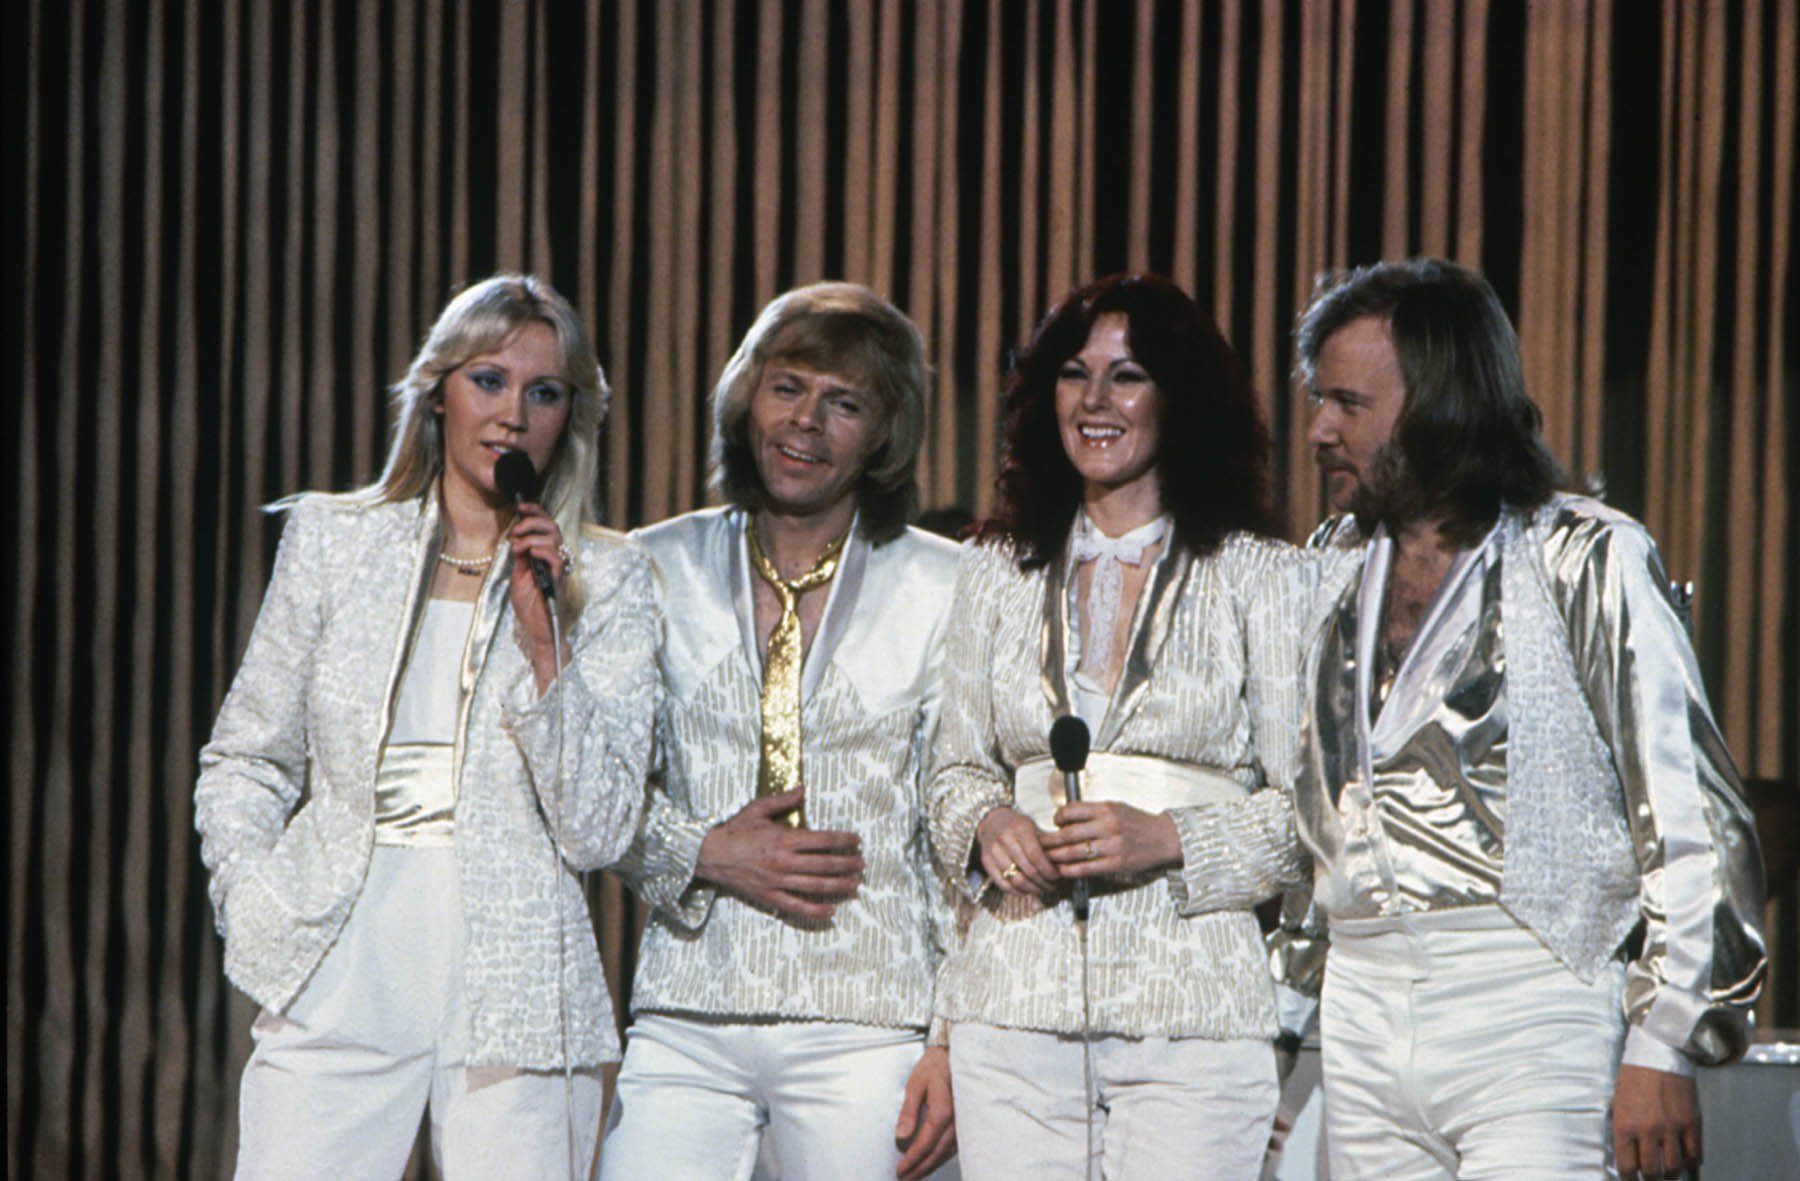 ABBA to reunite for new exhibition at Waterloo 43 years after hit single